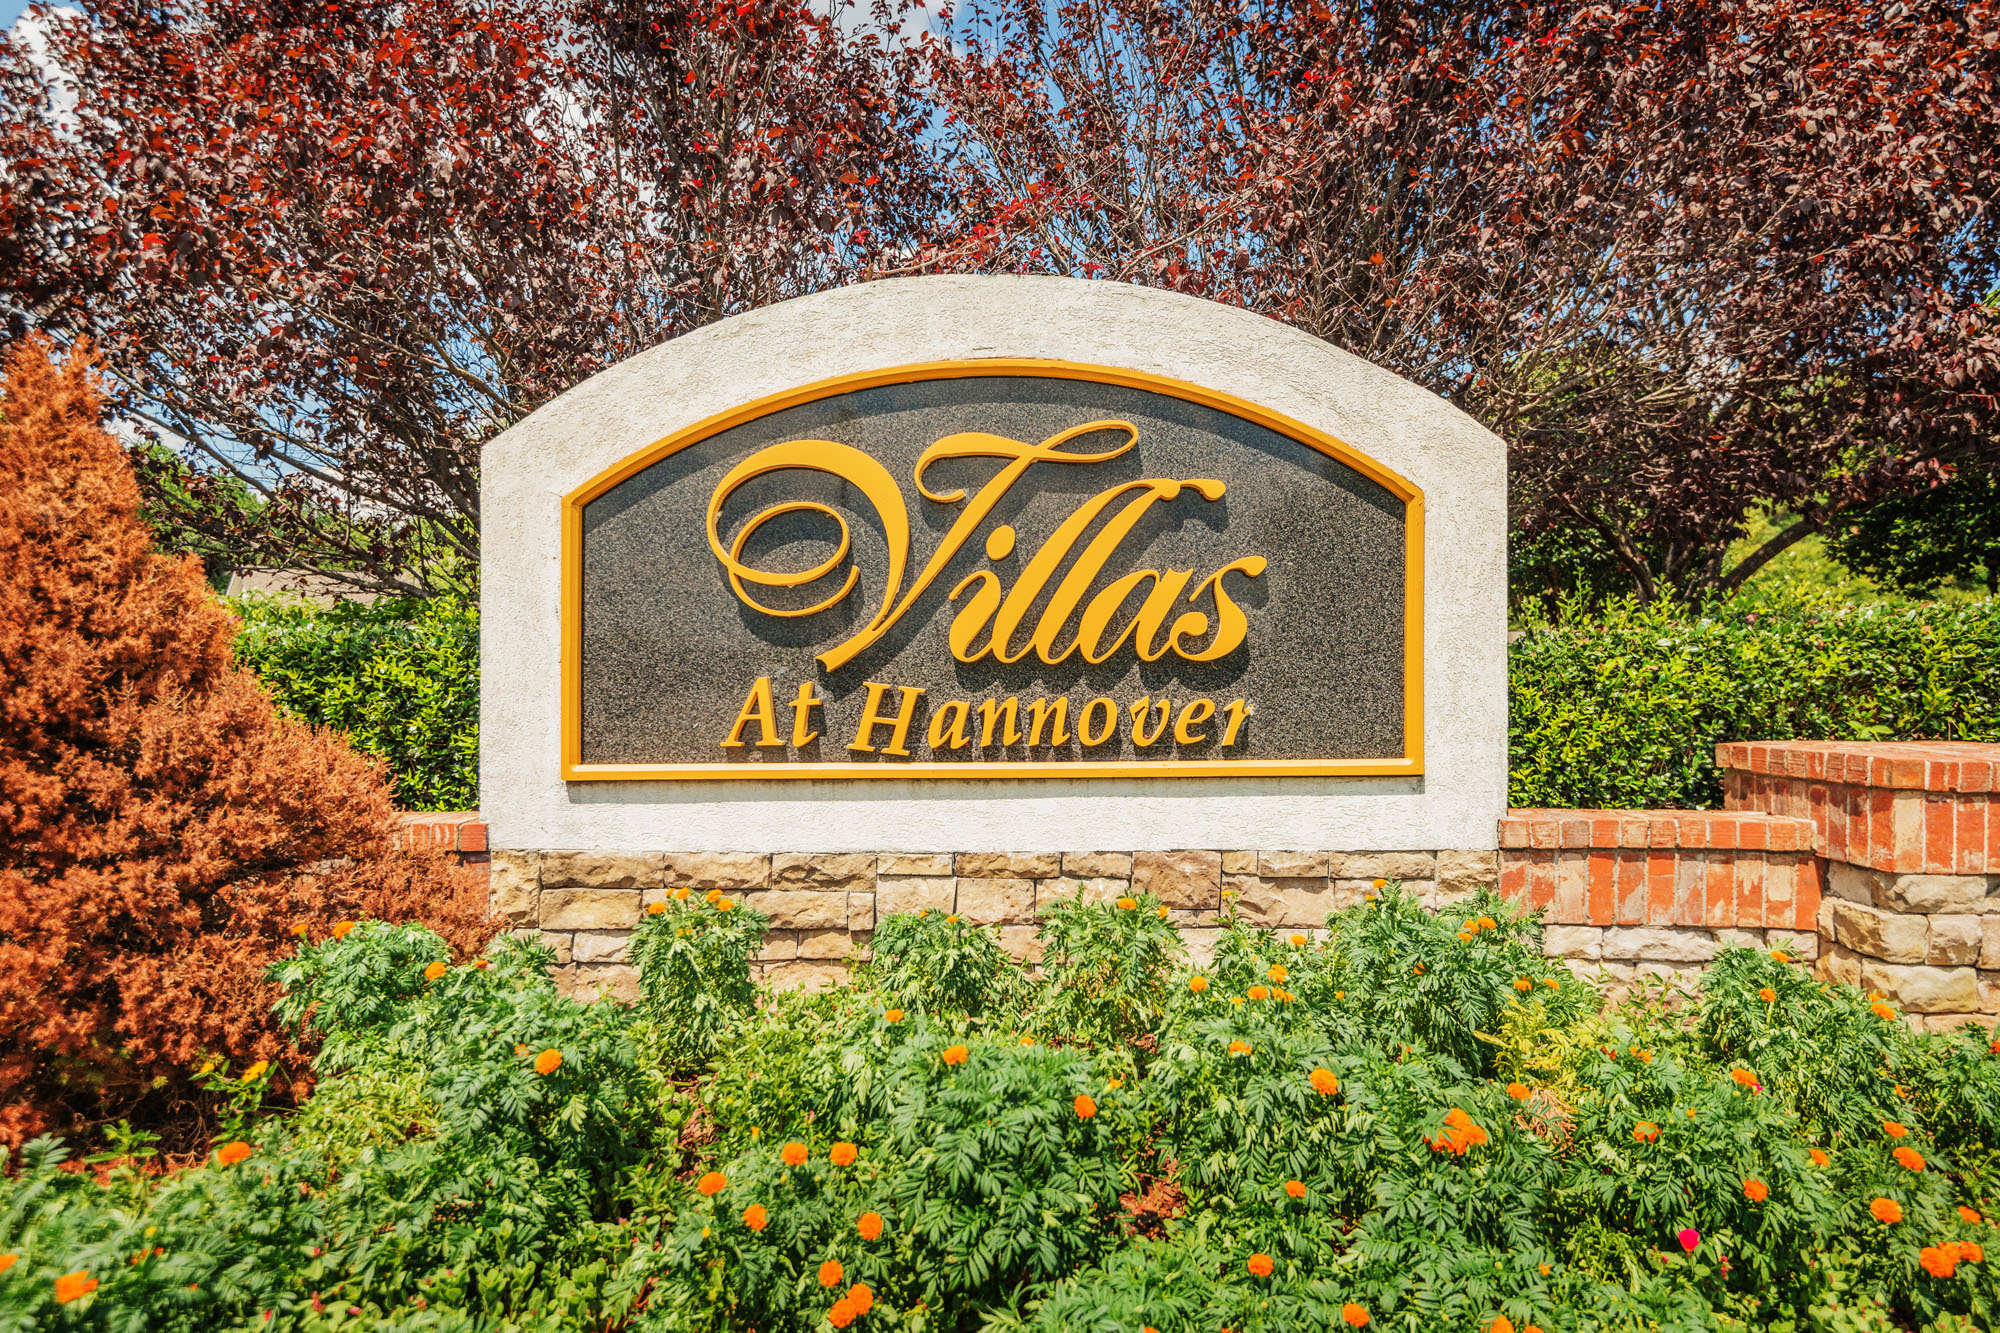 Villas at hannover coupons near me in stockbridge